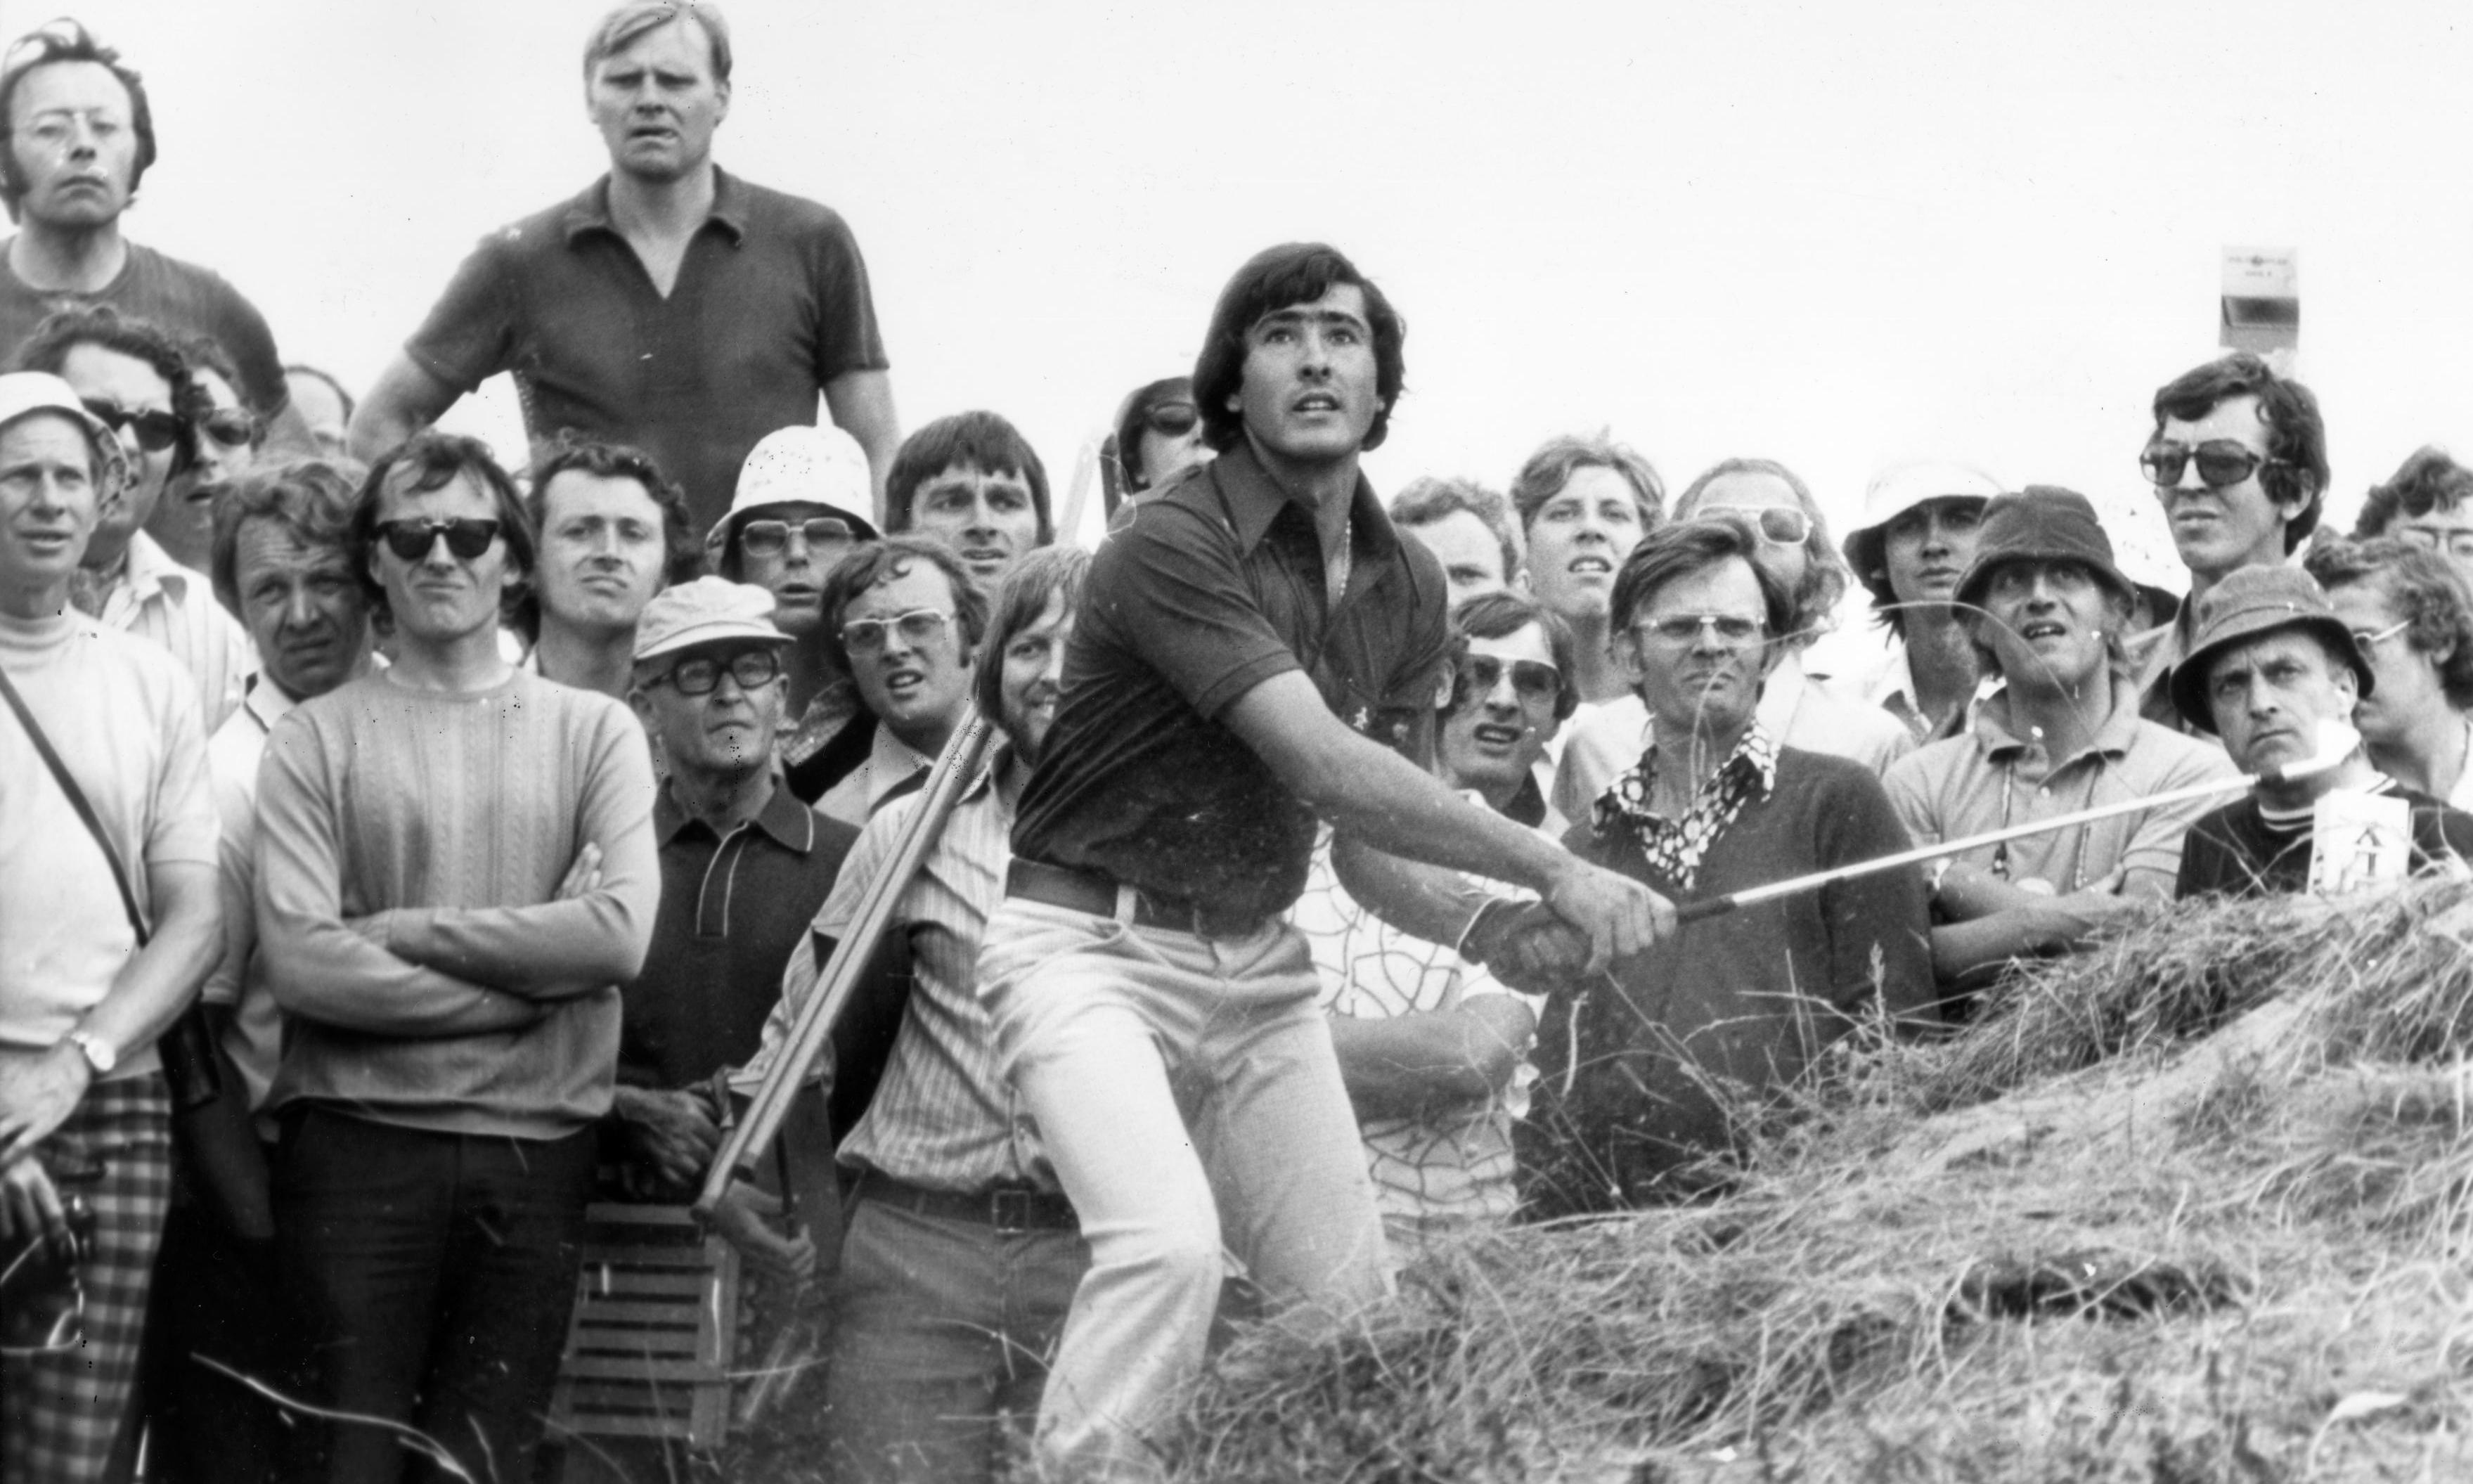 The forgotten story of … Seve, a hacker and Johnny Miller's 1976 Open